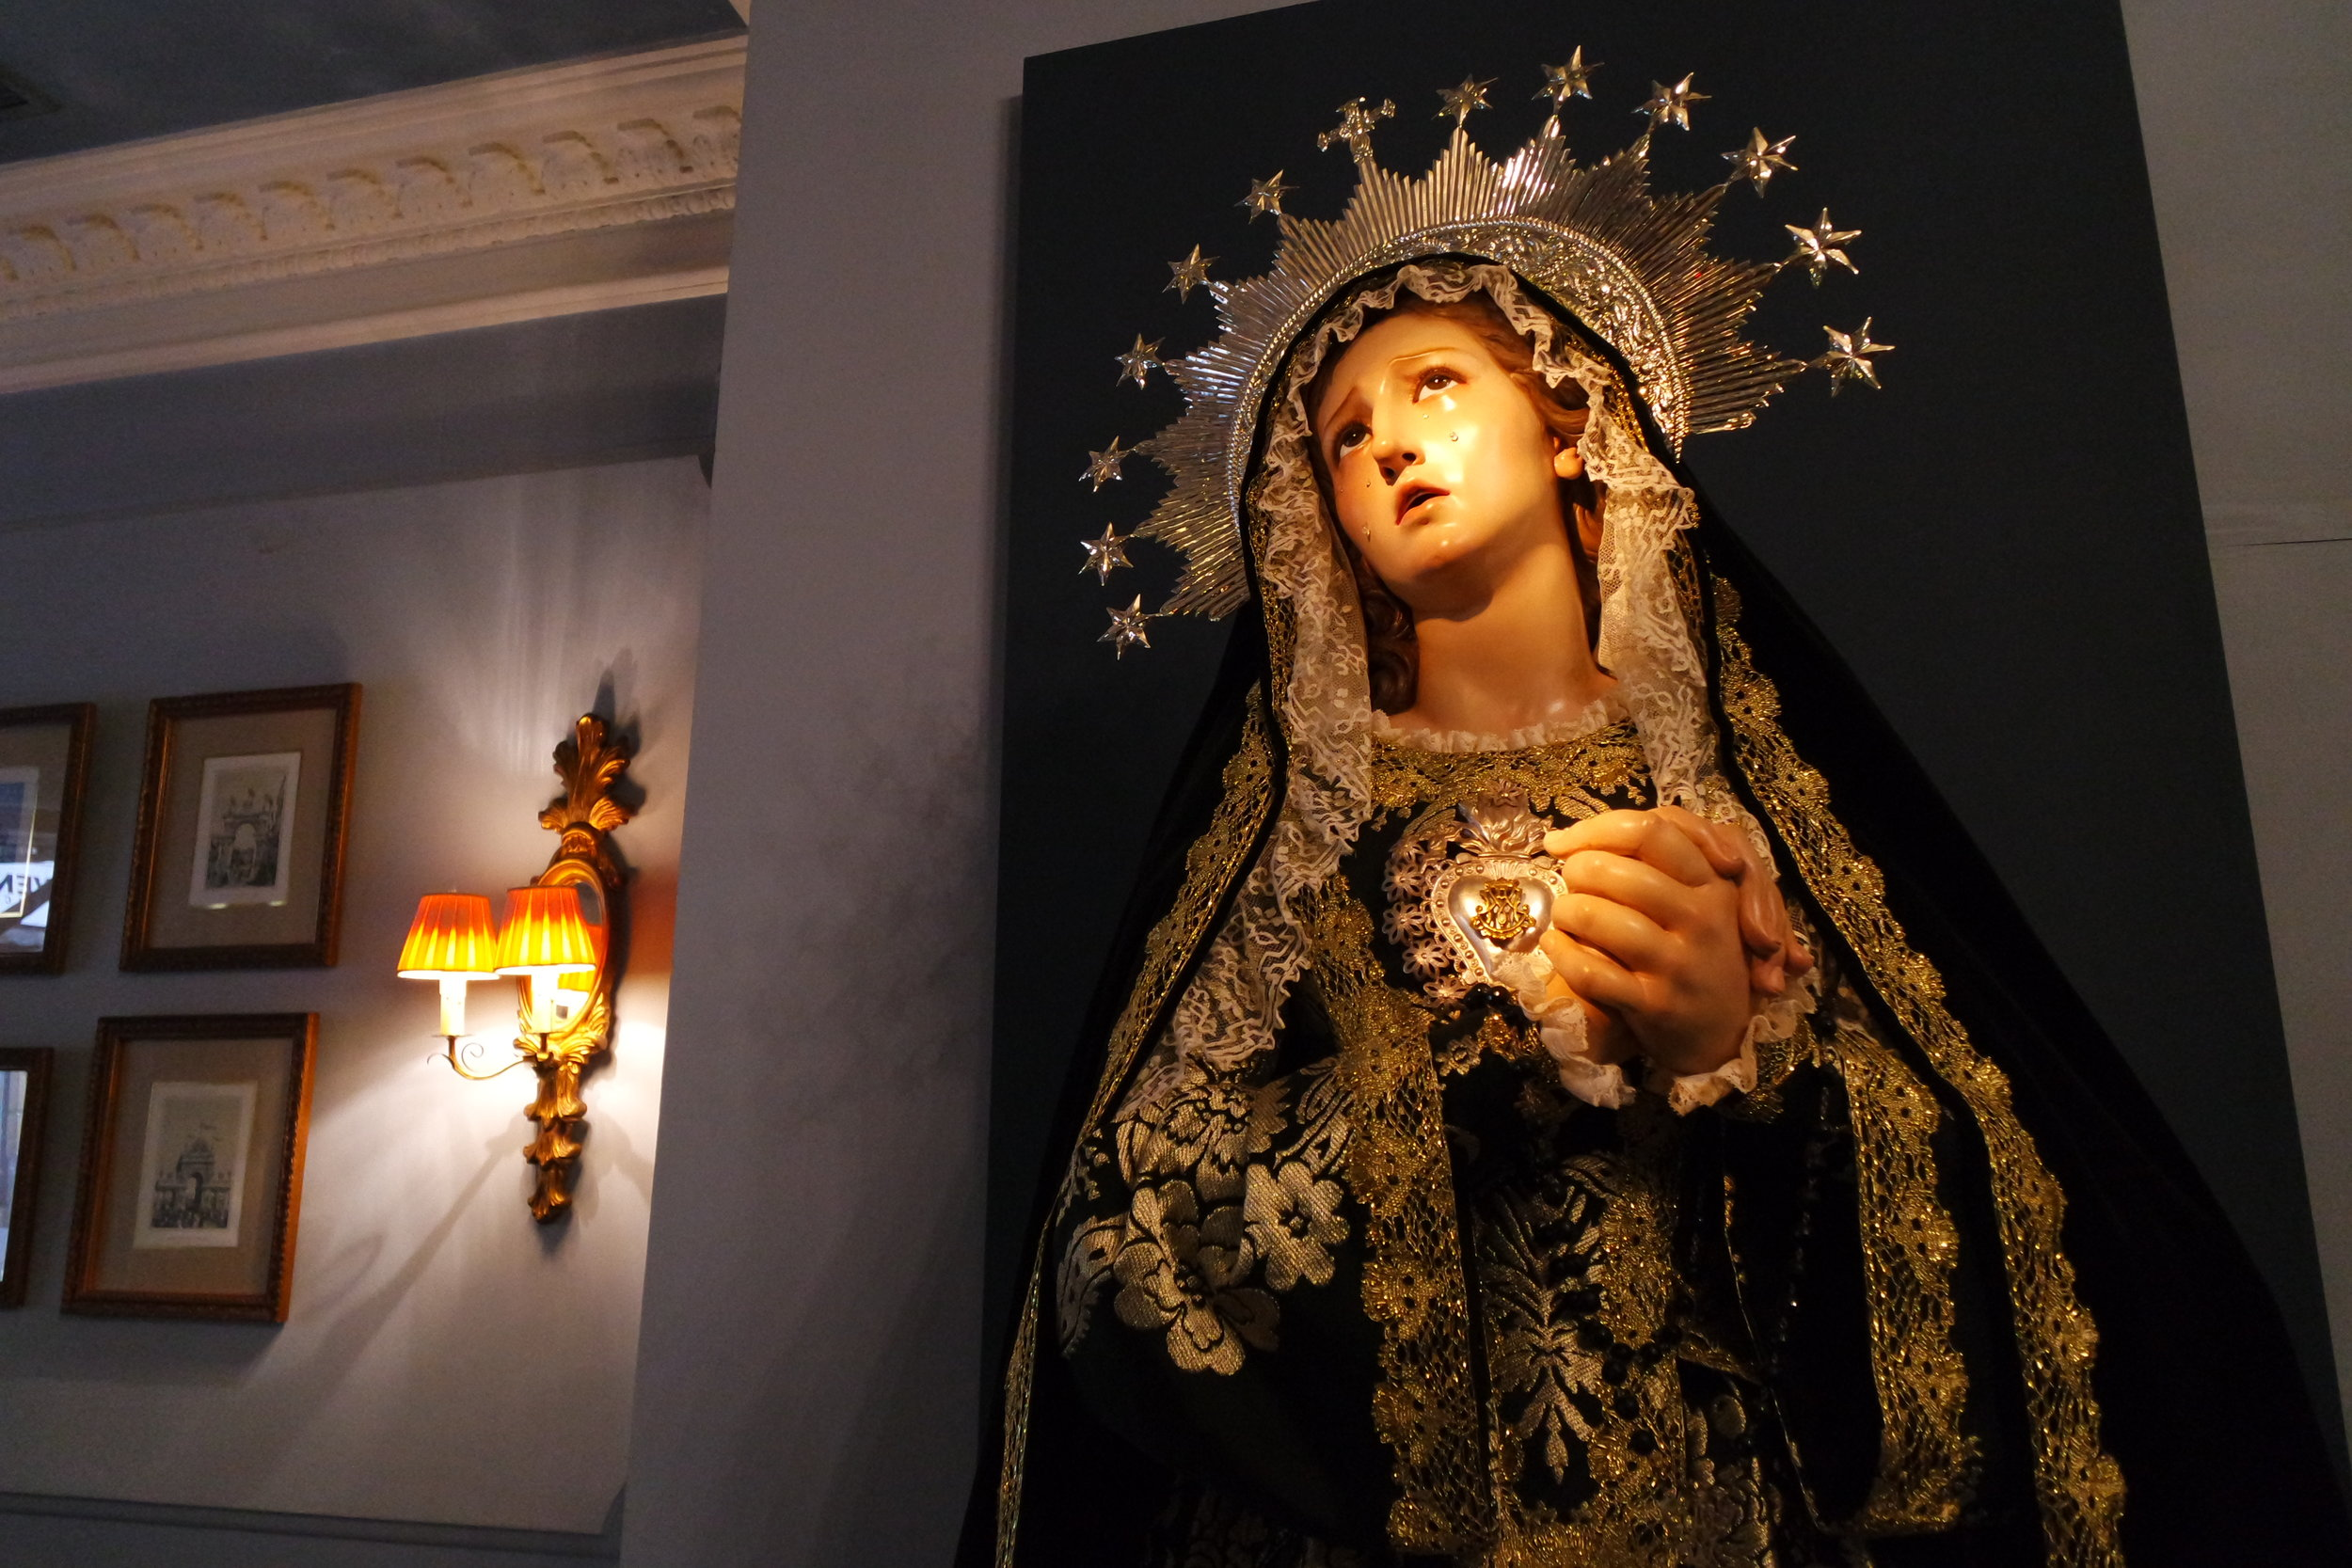 La Dolorosa  ( Our Lady of the Sorrows).  Resin teardrops, glass eyes and actual clothes add to the realism of the pained expression of the Virgin Mary, featured at Puerta Oscura in Málaga